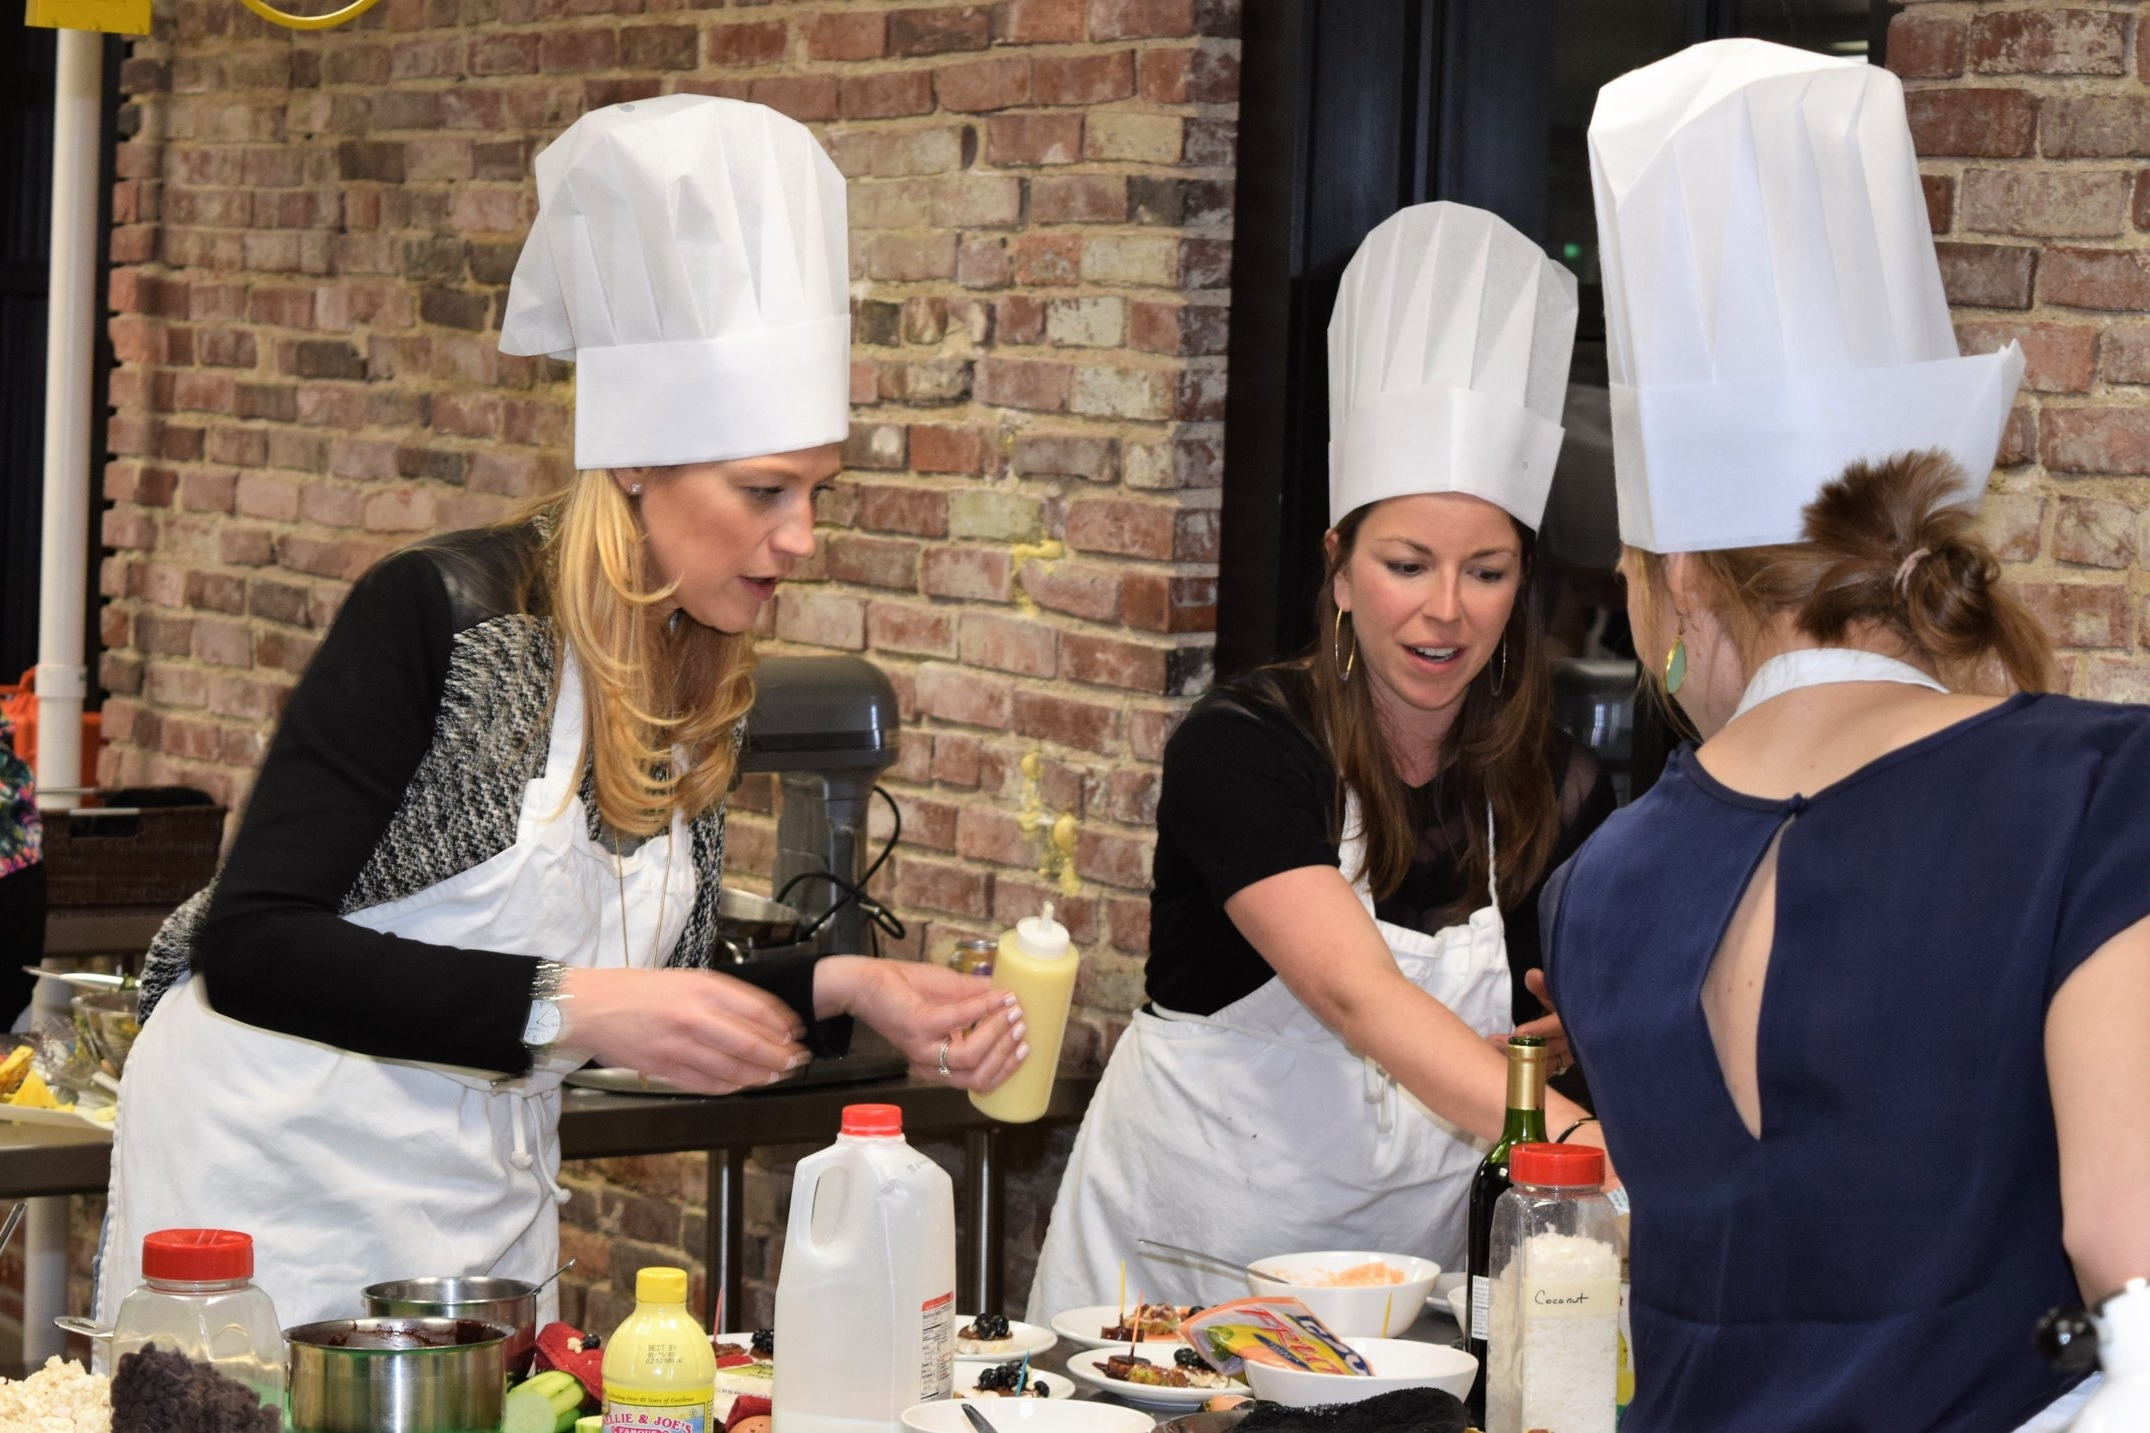 Bachelorettes work together at fun and creative cooking challenge party